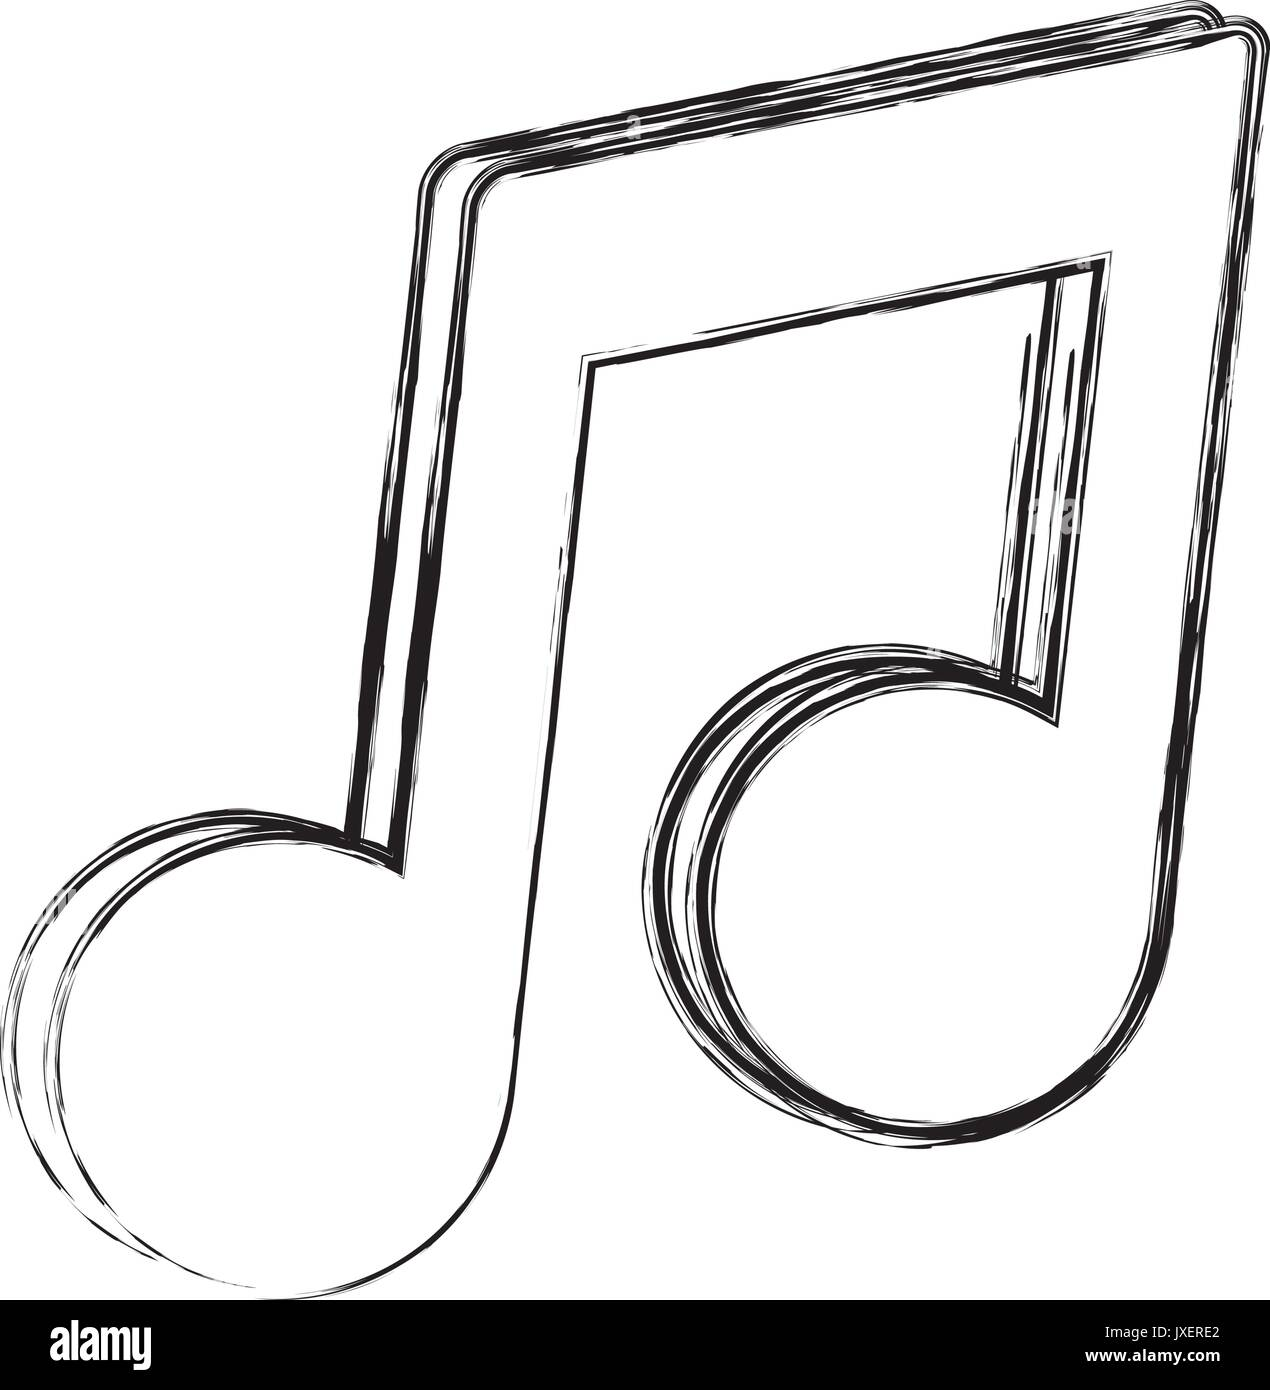 Music Note Symbol Icon Vector Stock Vector Images Alamy